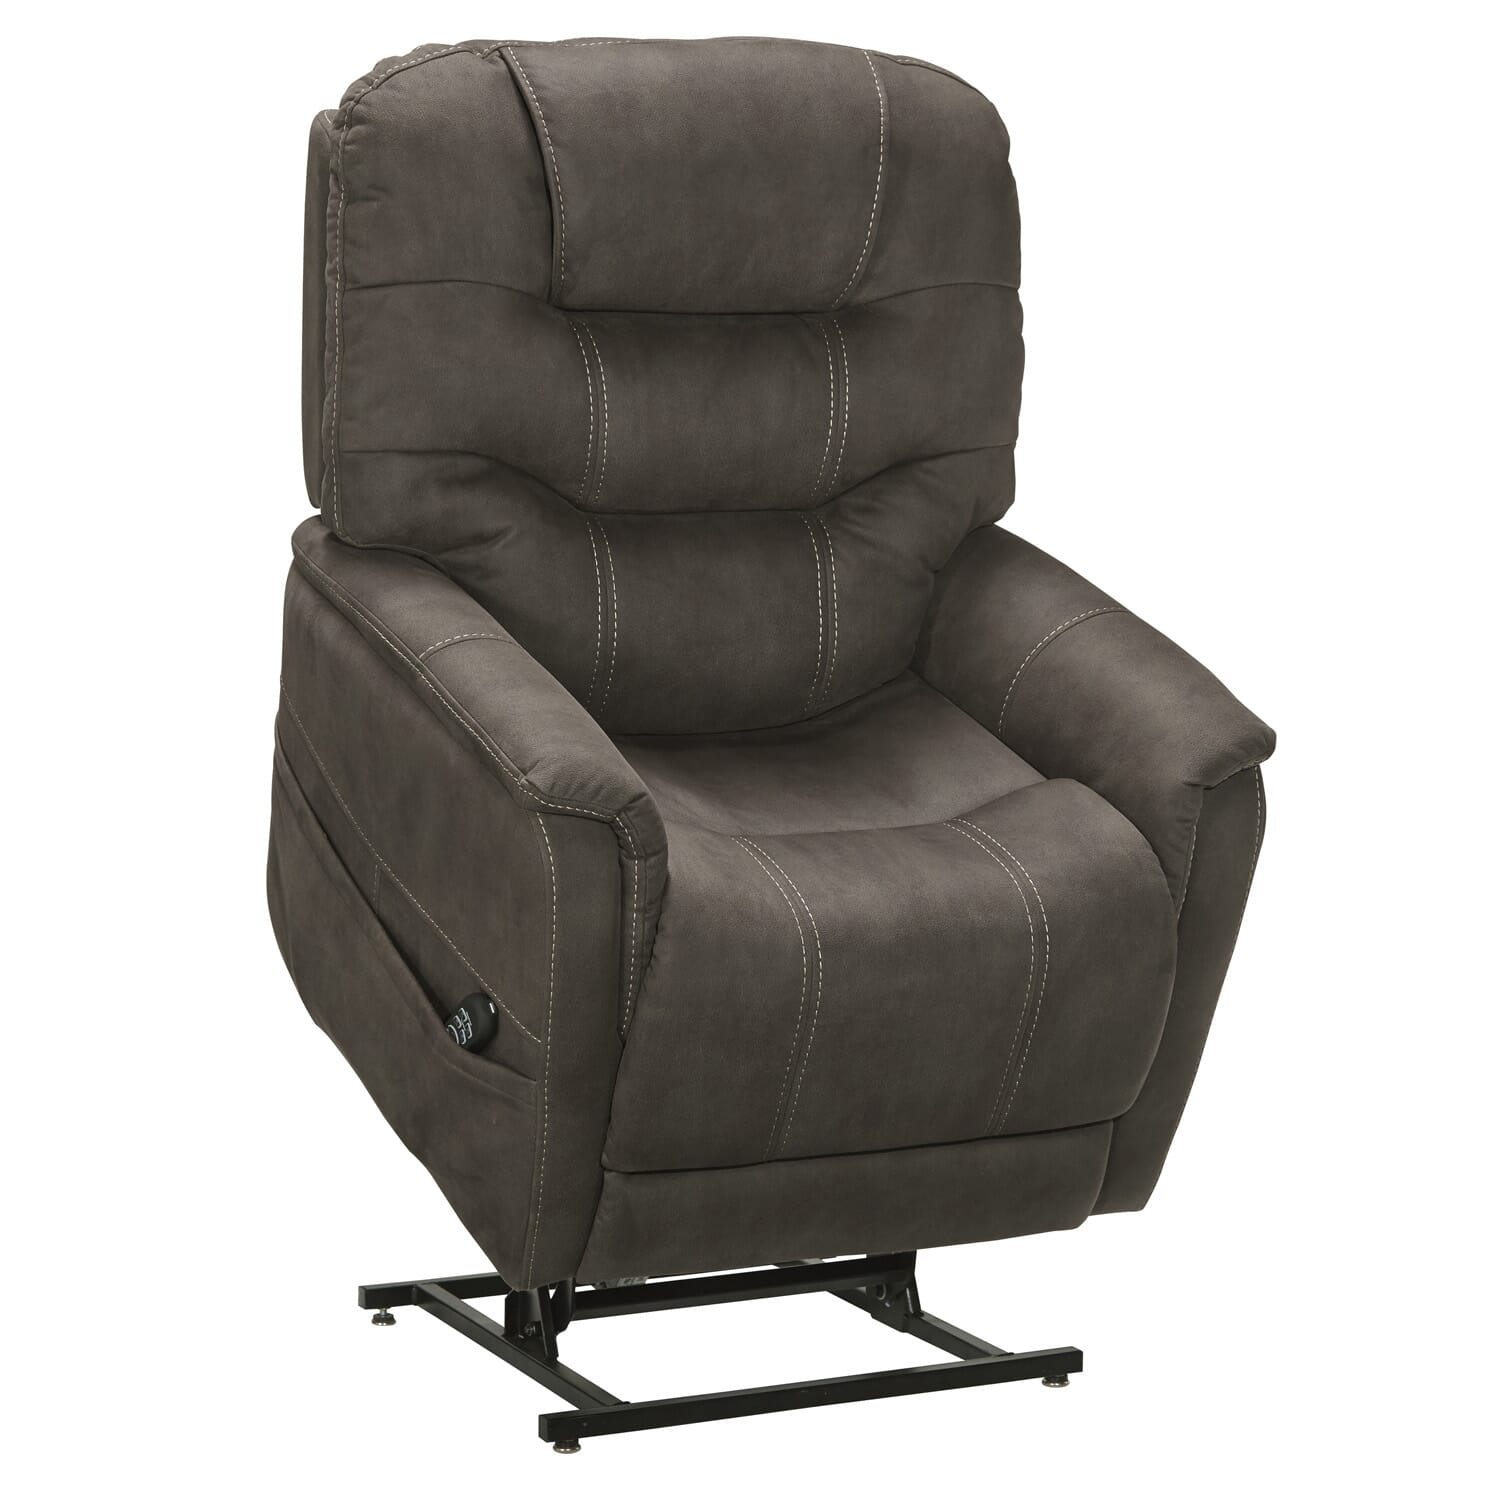 Rock Power Lift Chair Lift Chairs New Arrivals Wg Amp R